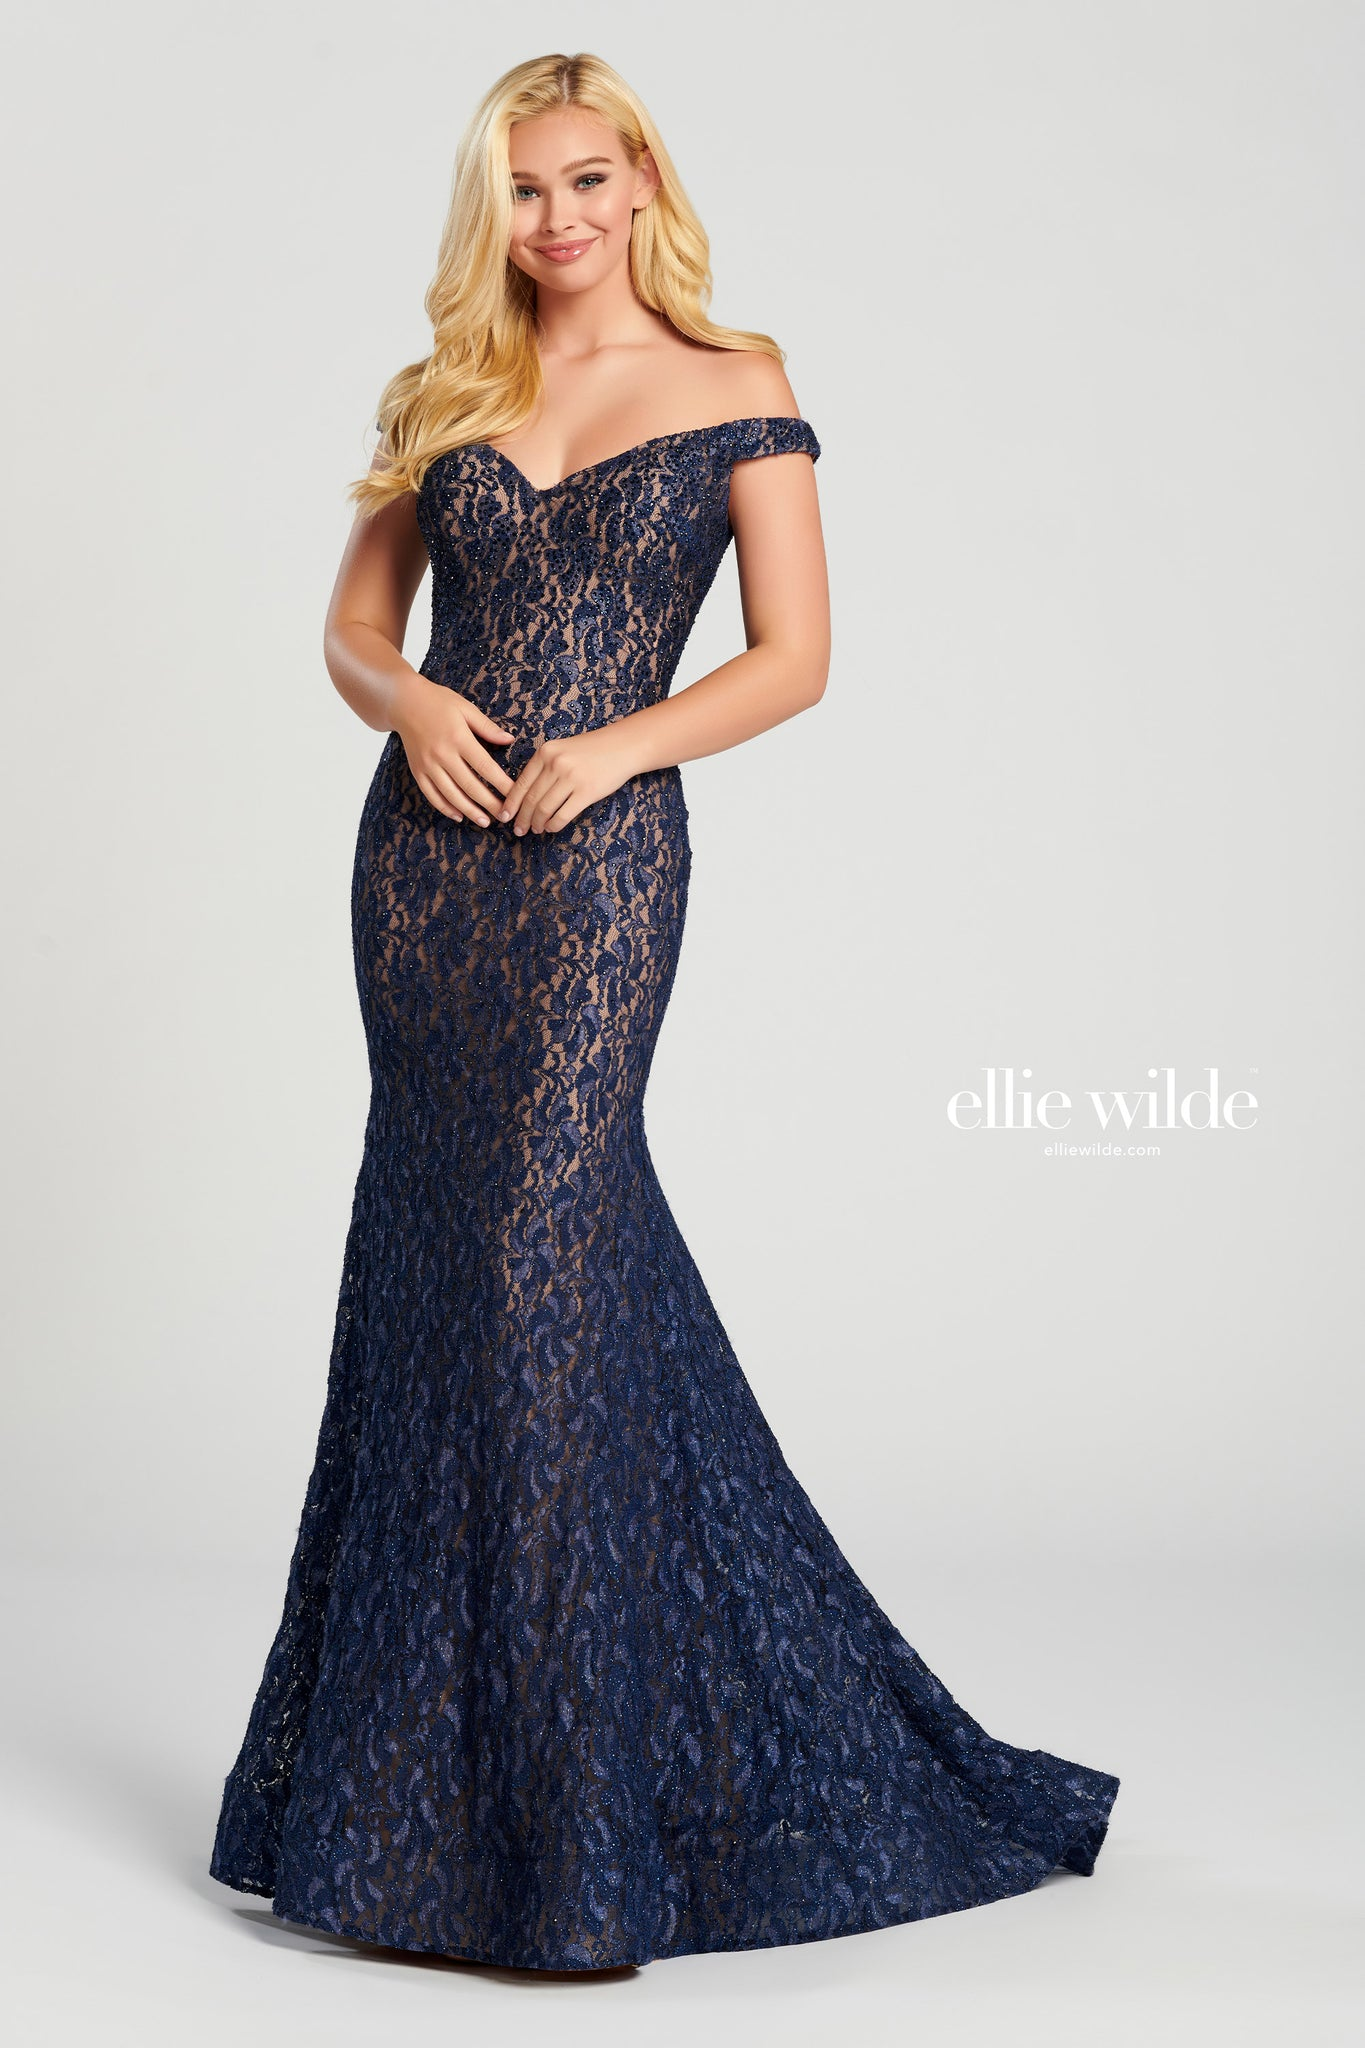 Ellie Wilde Navy Lace Evening Gown - Gissings Boutique